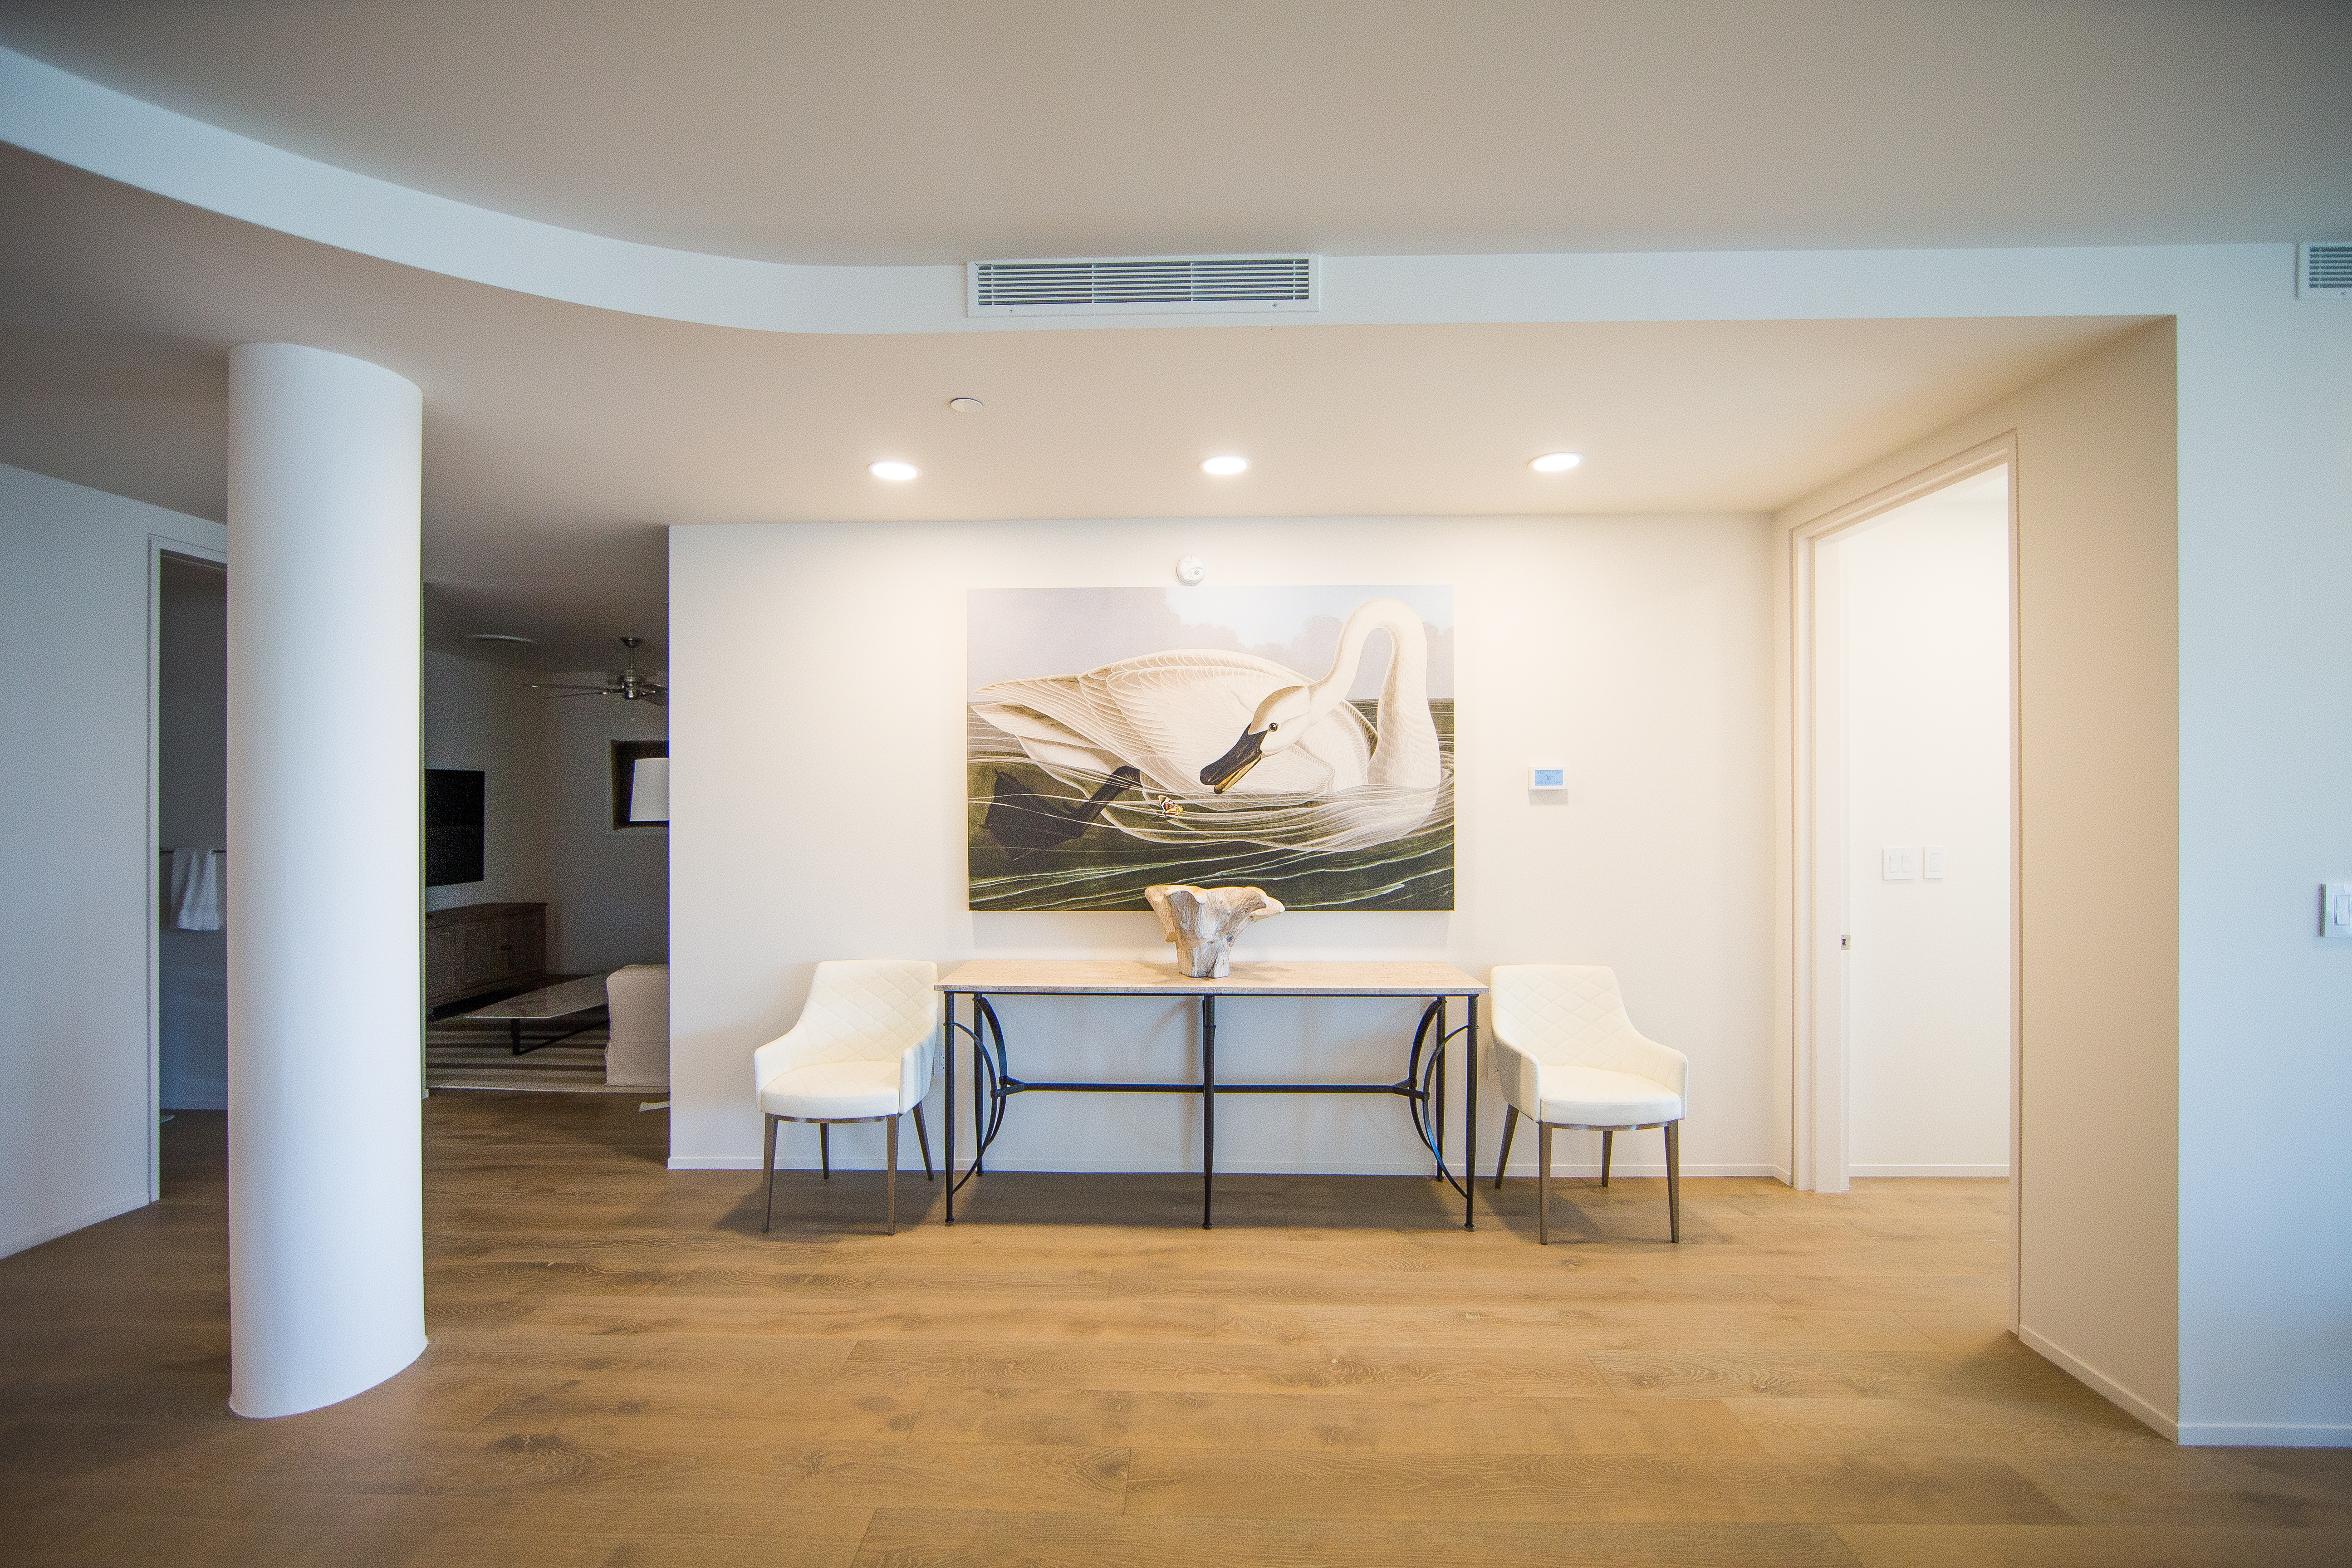 Beautiful artwork is featured throughout the home